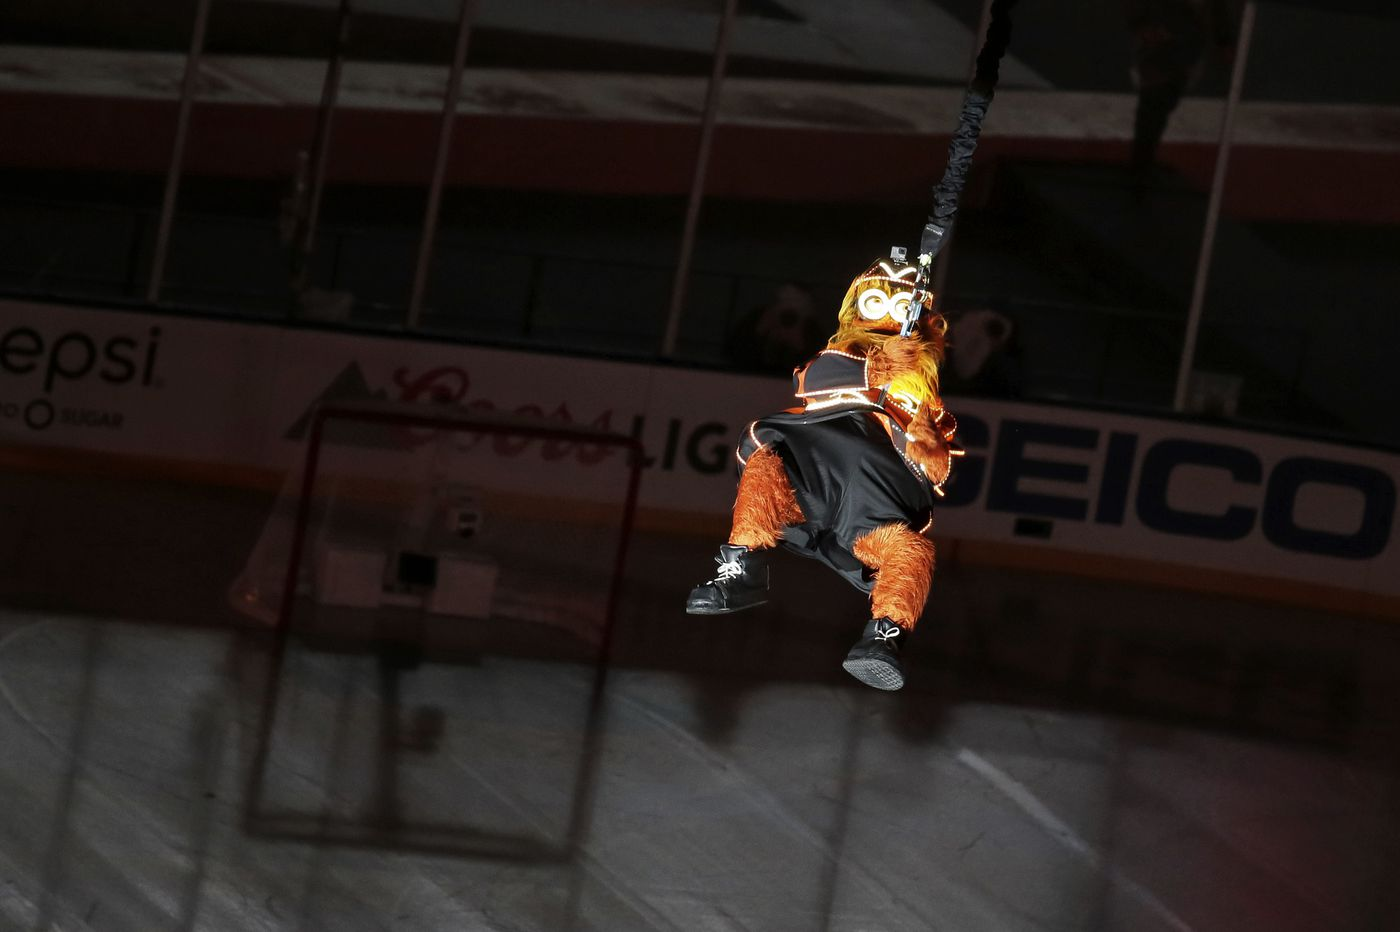 Watch: Gritty makes impressive entrance before Flyers-Penguins Stadium Series game